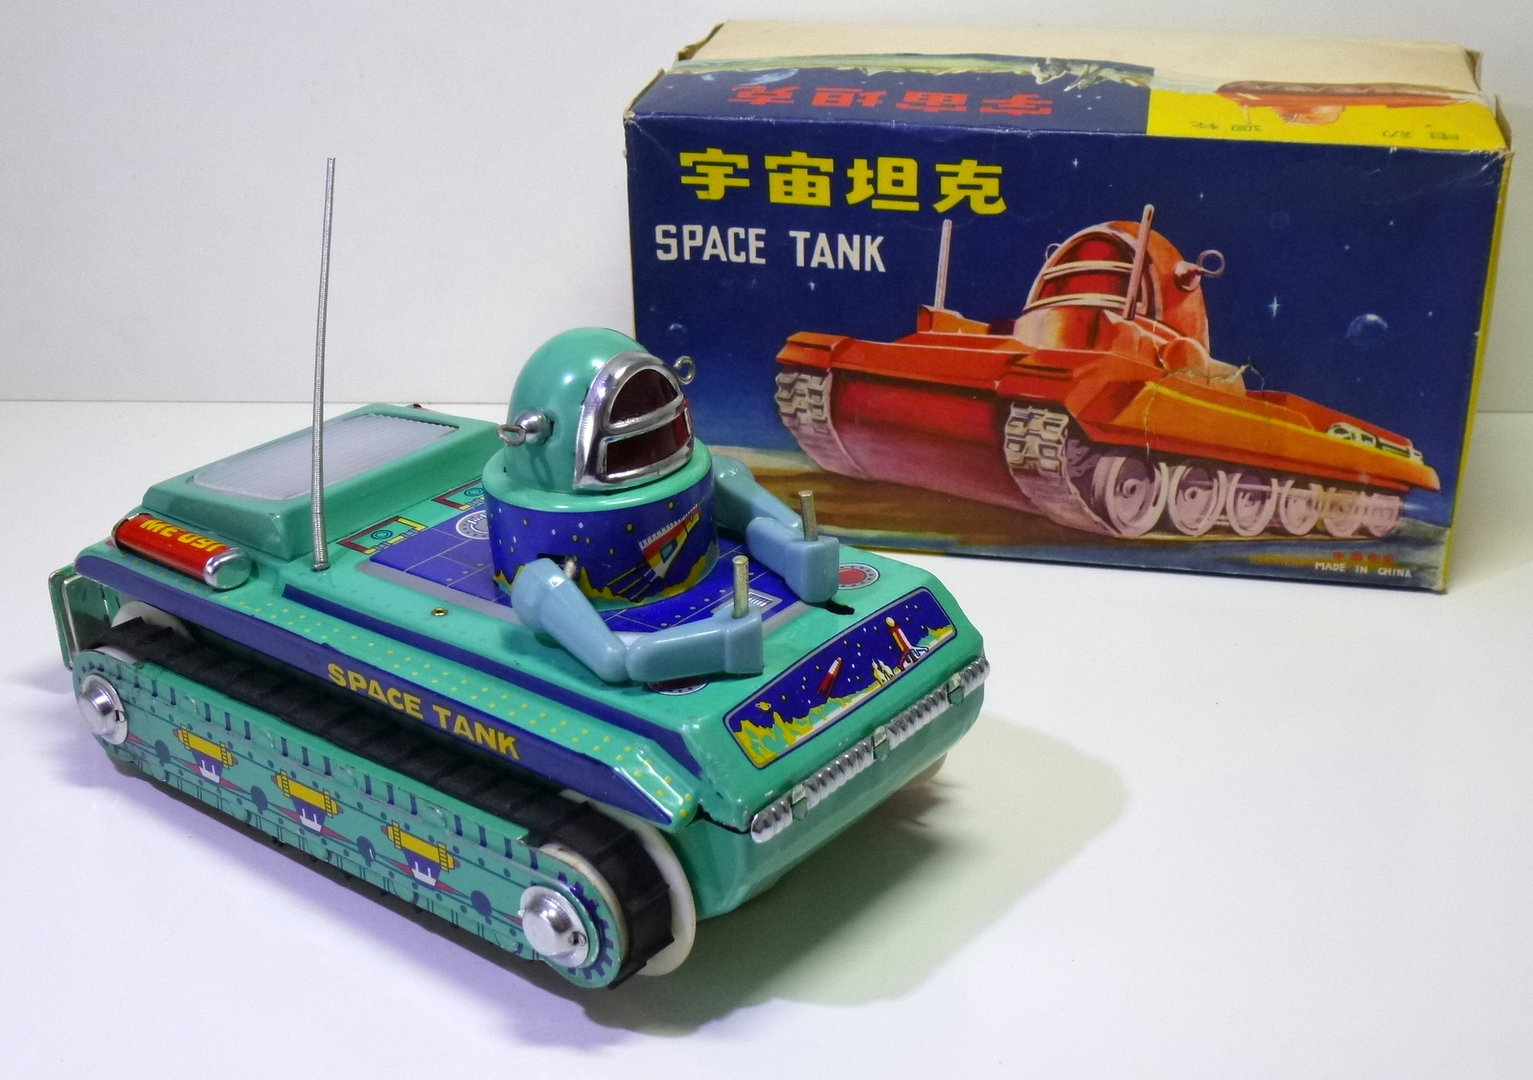 Tin Space Tank ME-091 from the ROBBY THE ROBOT series, Battery Operated in Original Box